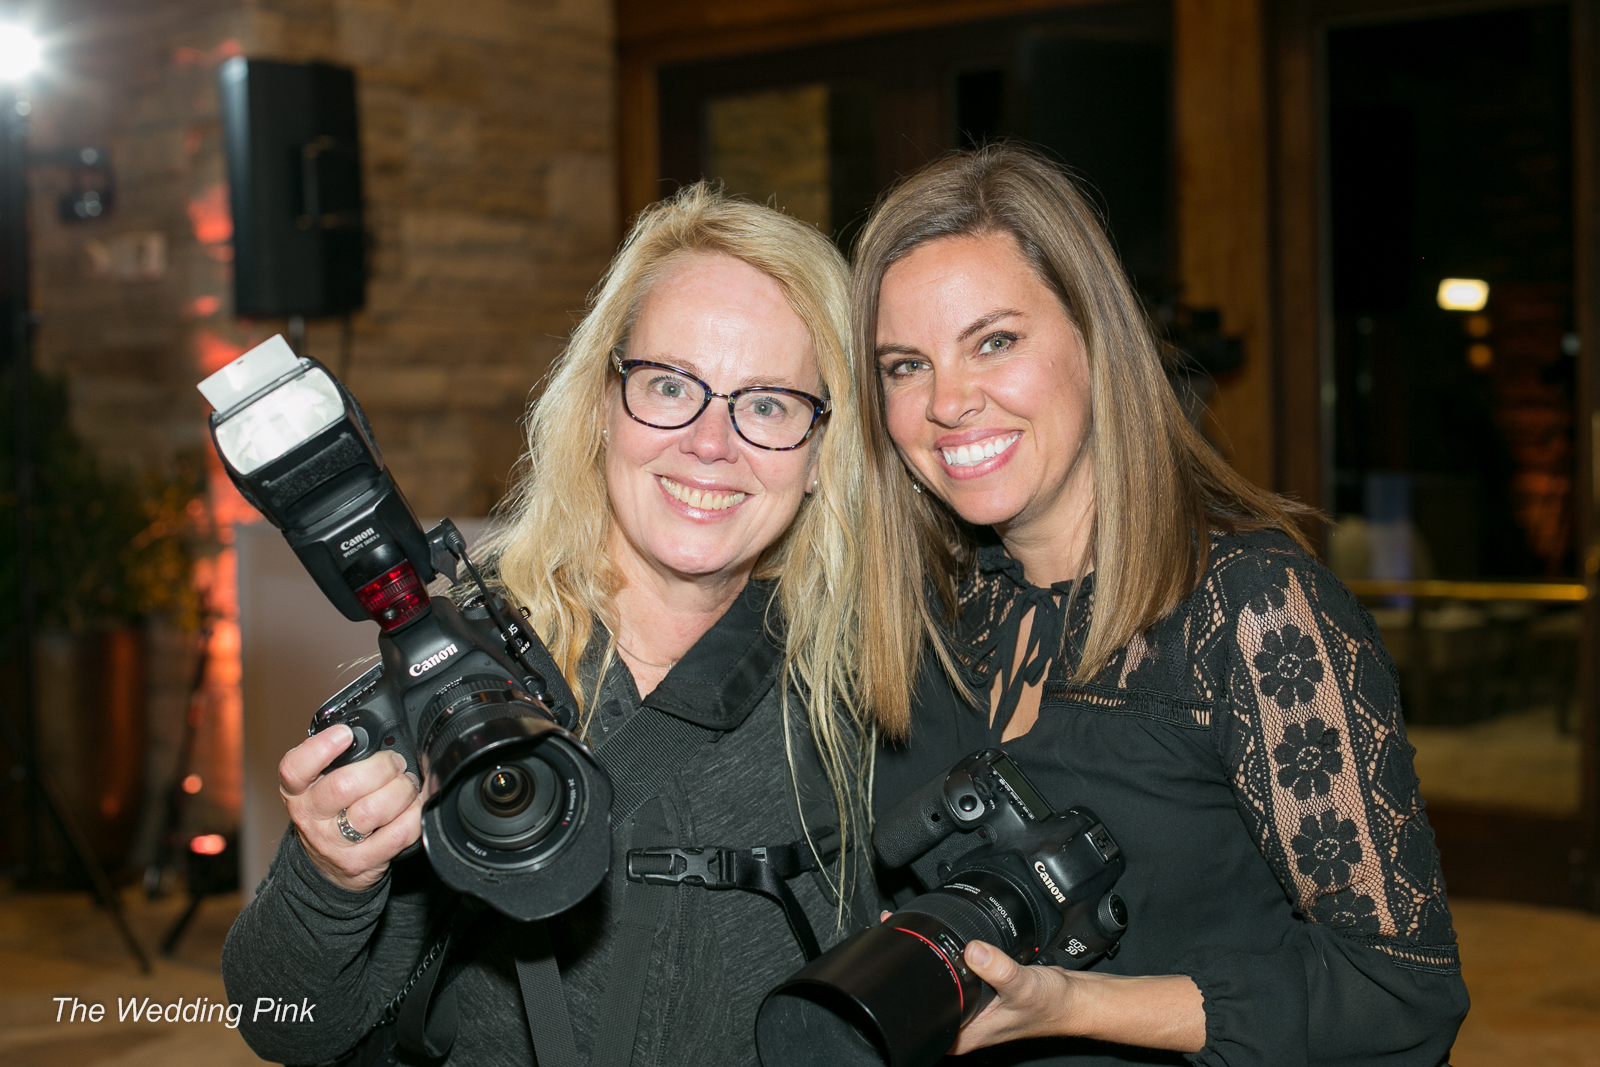 Thank you to our fabulous photographers, Katie Van Buren & Paige Eden. -